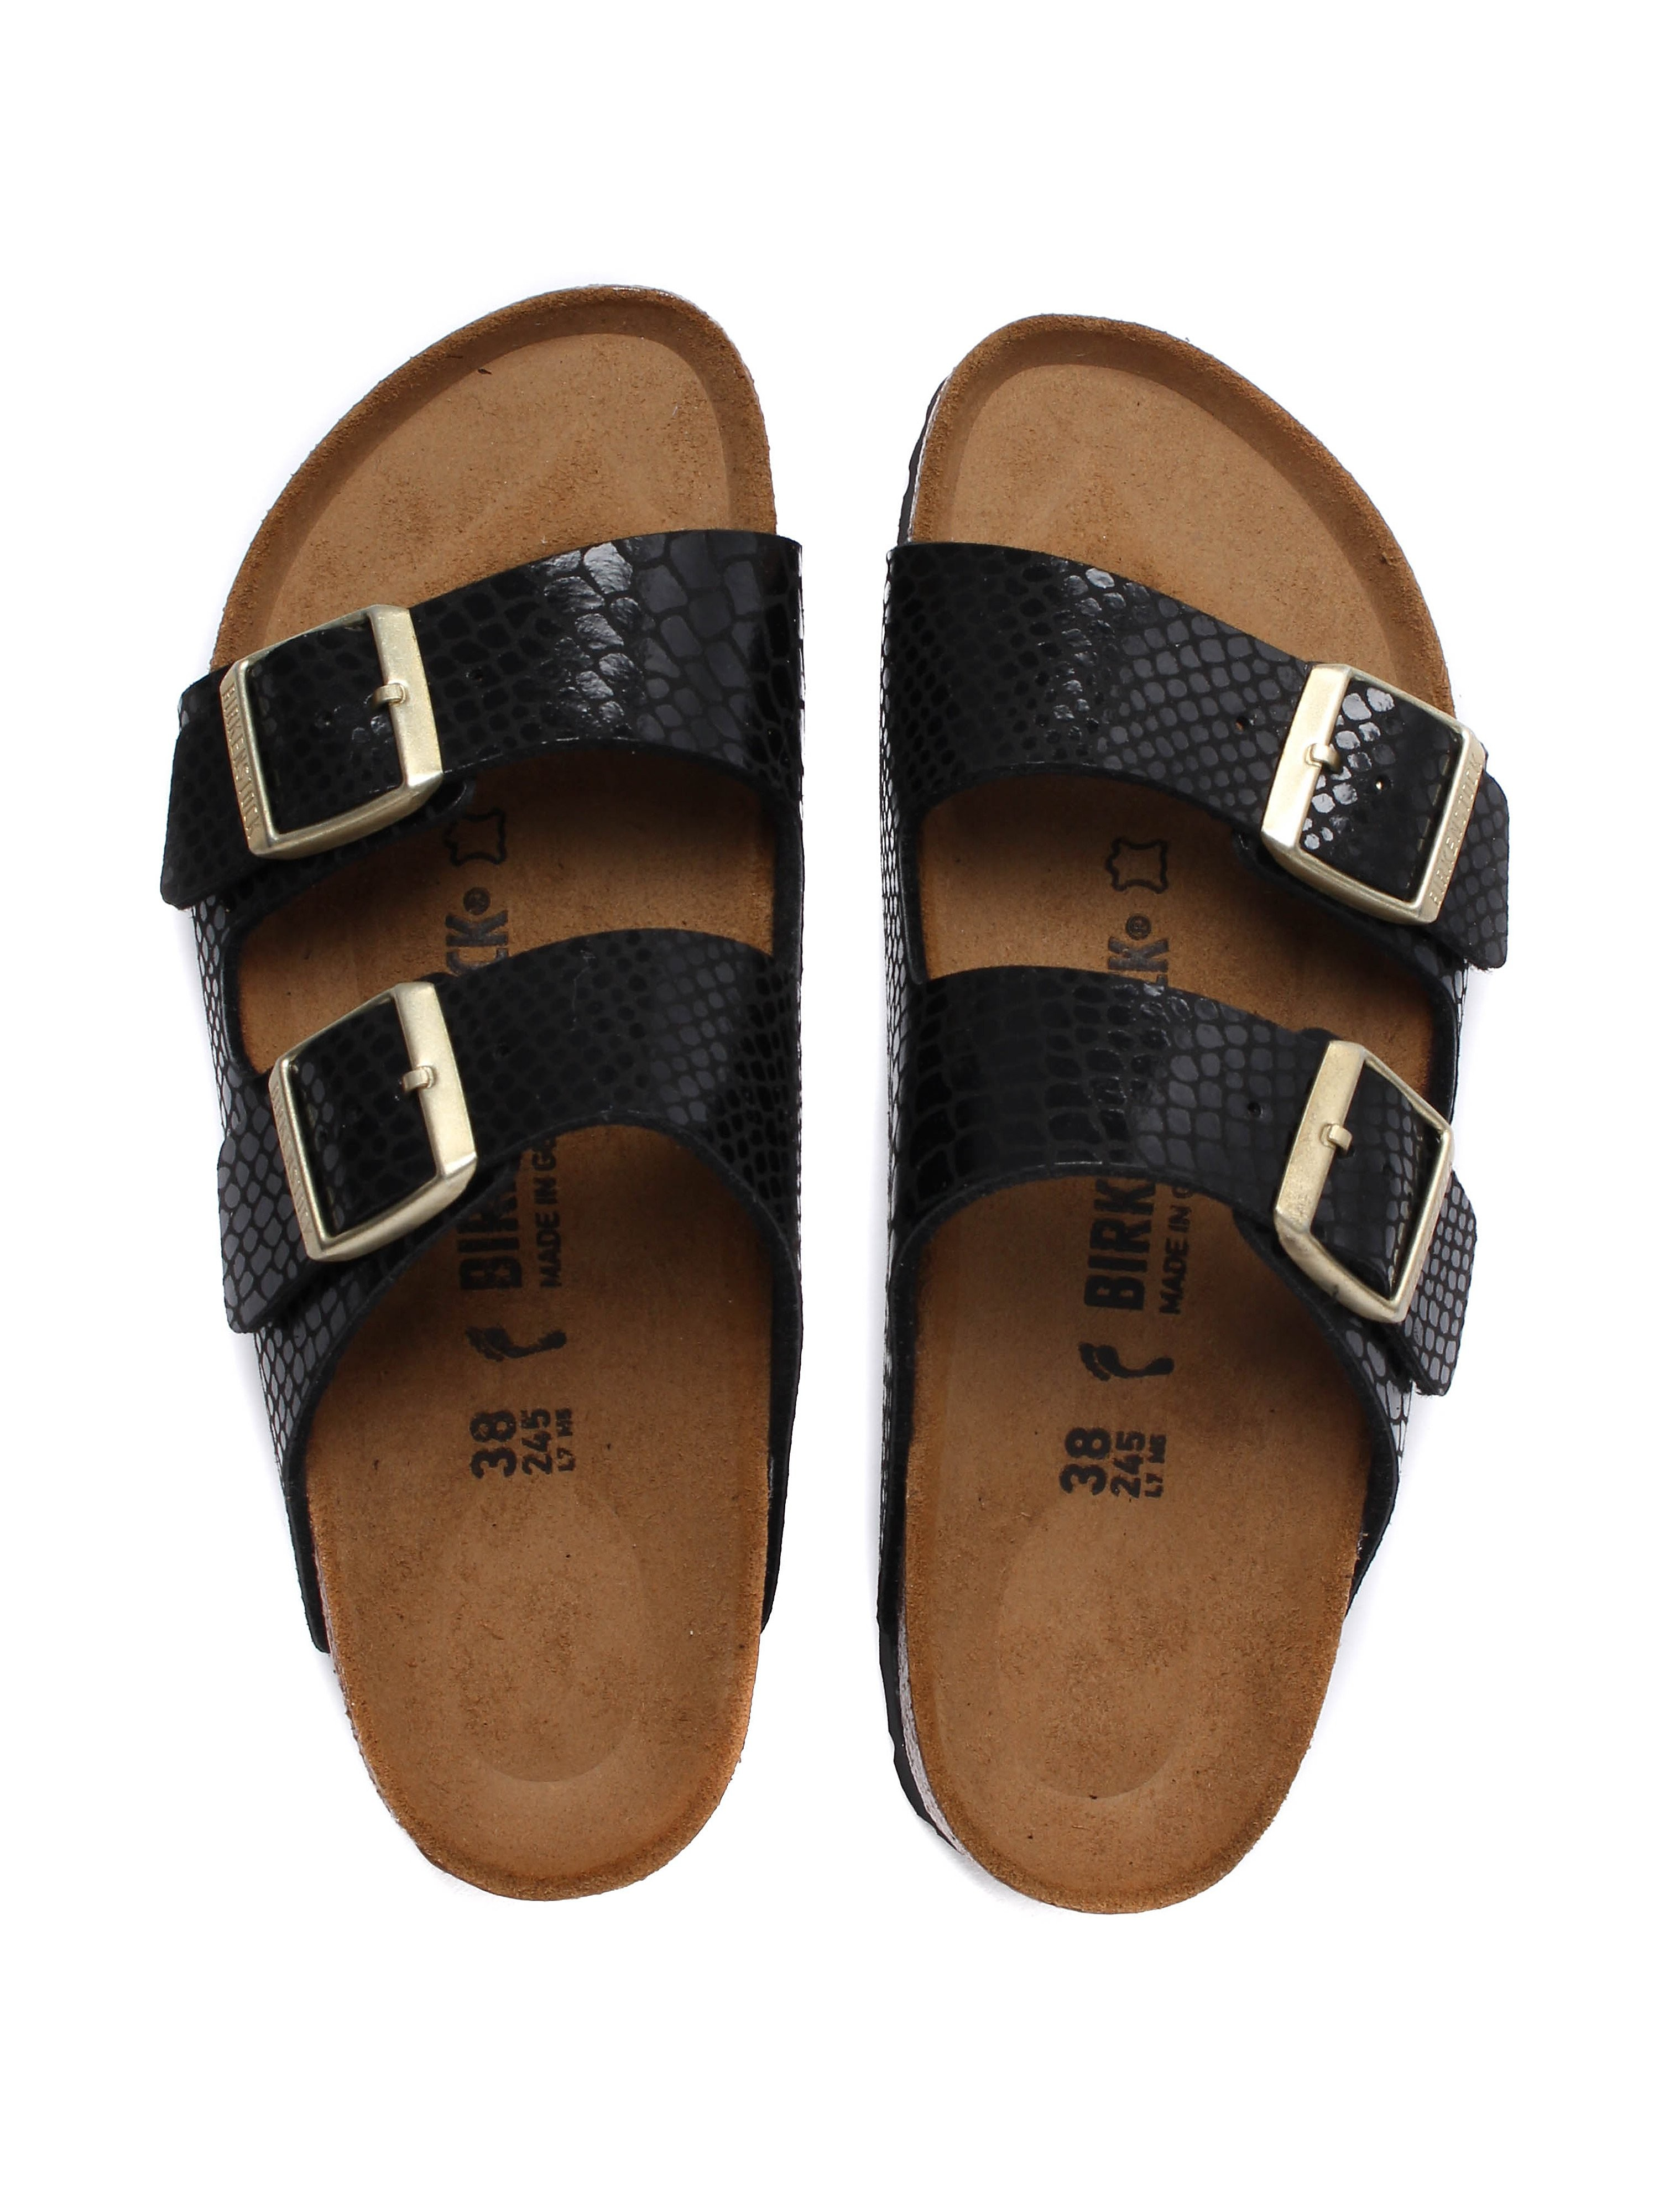 Birkenstock Women's Arizona Narrow Fit Sandals - Black Snakeskin